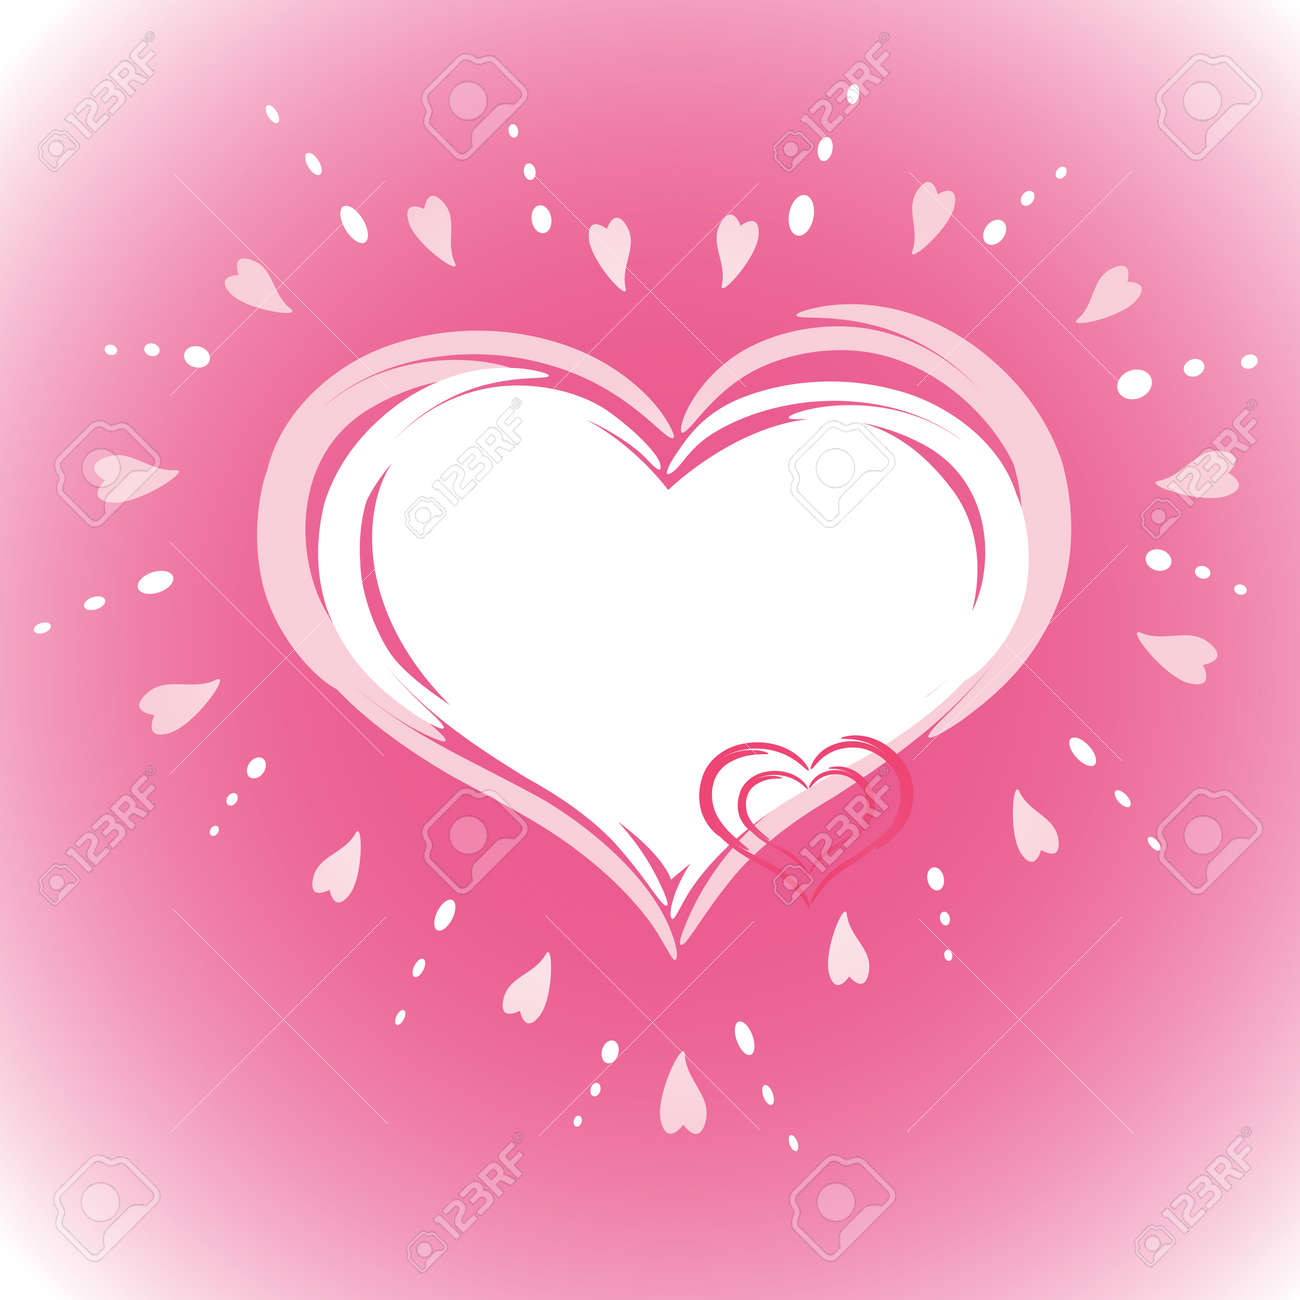 The valentine's day. Vector illustration. EPS8, all parts closed, possibility to edit. Stock Vector - 4008940